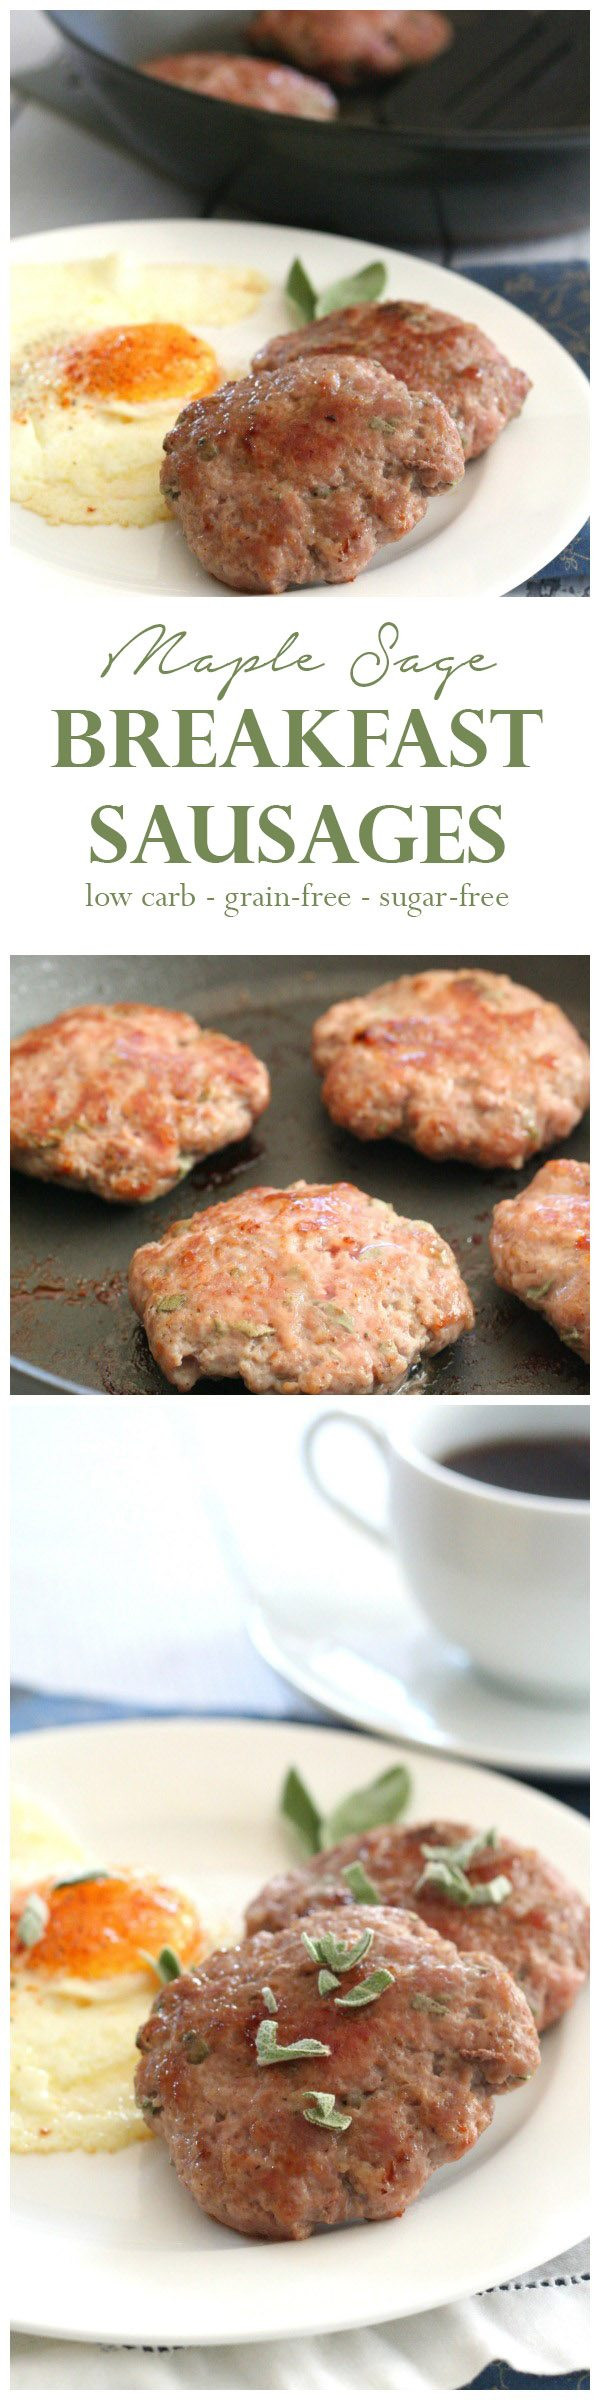 Maple Breakfast Sausage Recipe  Low Carb Maple Sage Breakfast Sausage Recipe